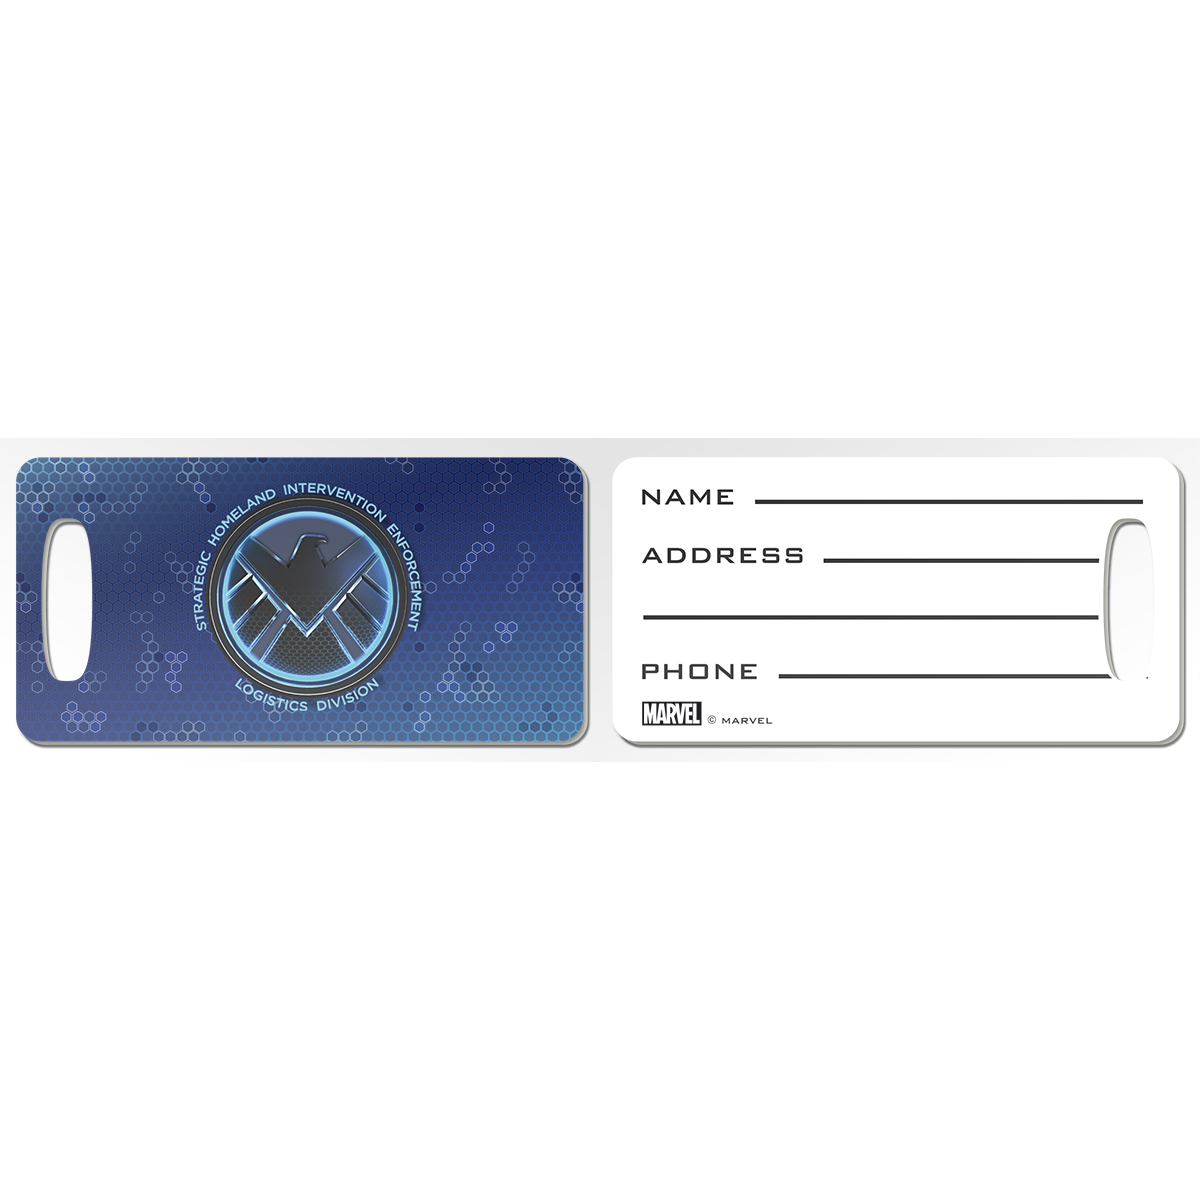 Marvel's Agents of S.H.I.E.L.D Emblem Luggage Tag